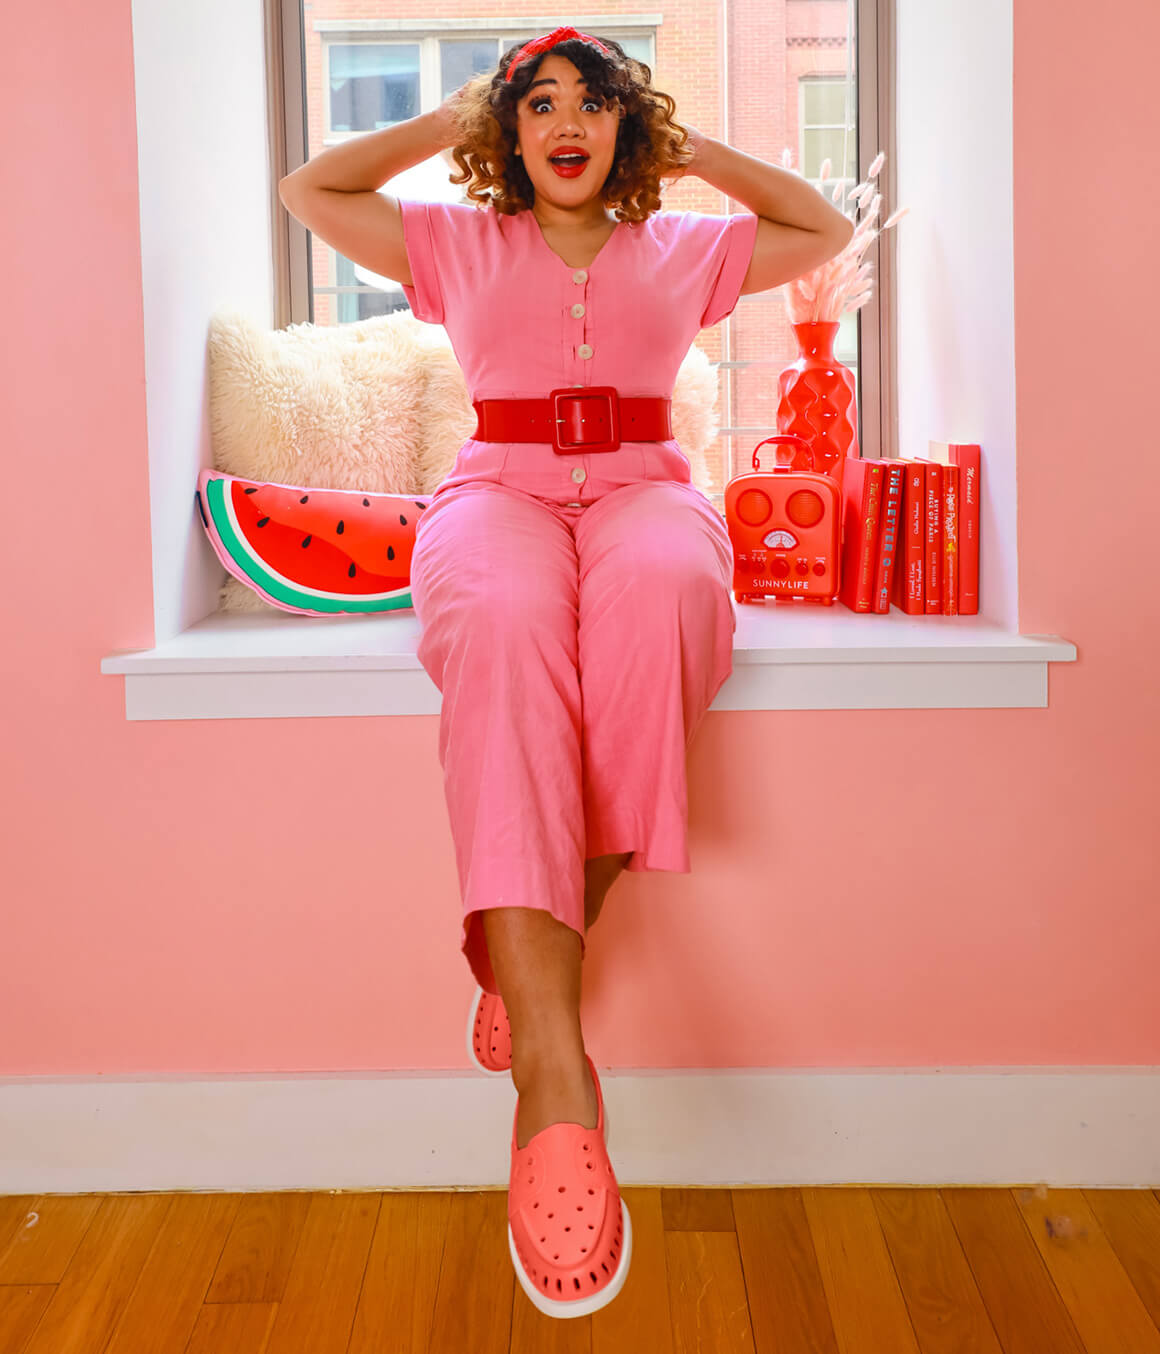 Courtney dressed all in pink with pink Floats.